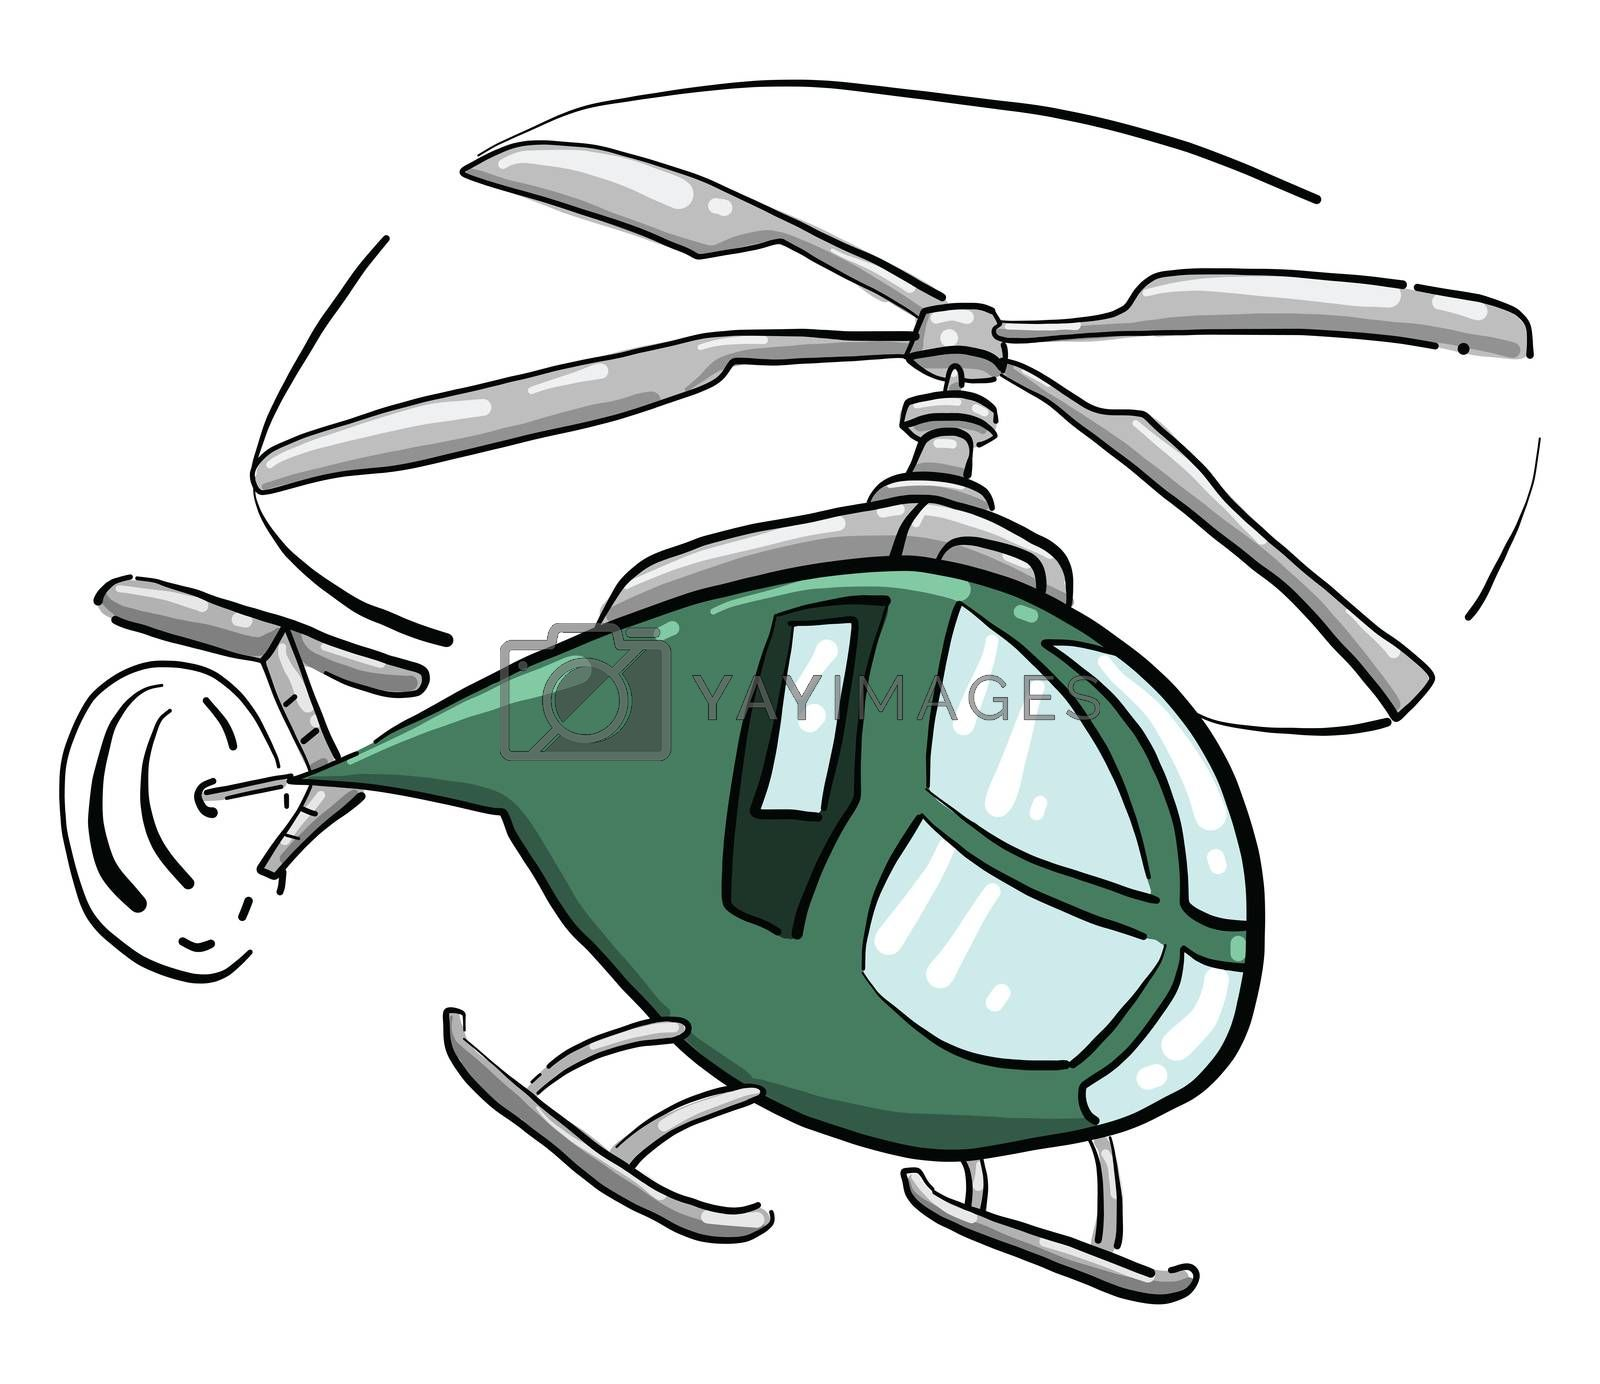 Green helicopter , illustration, vector on white background